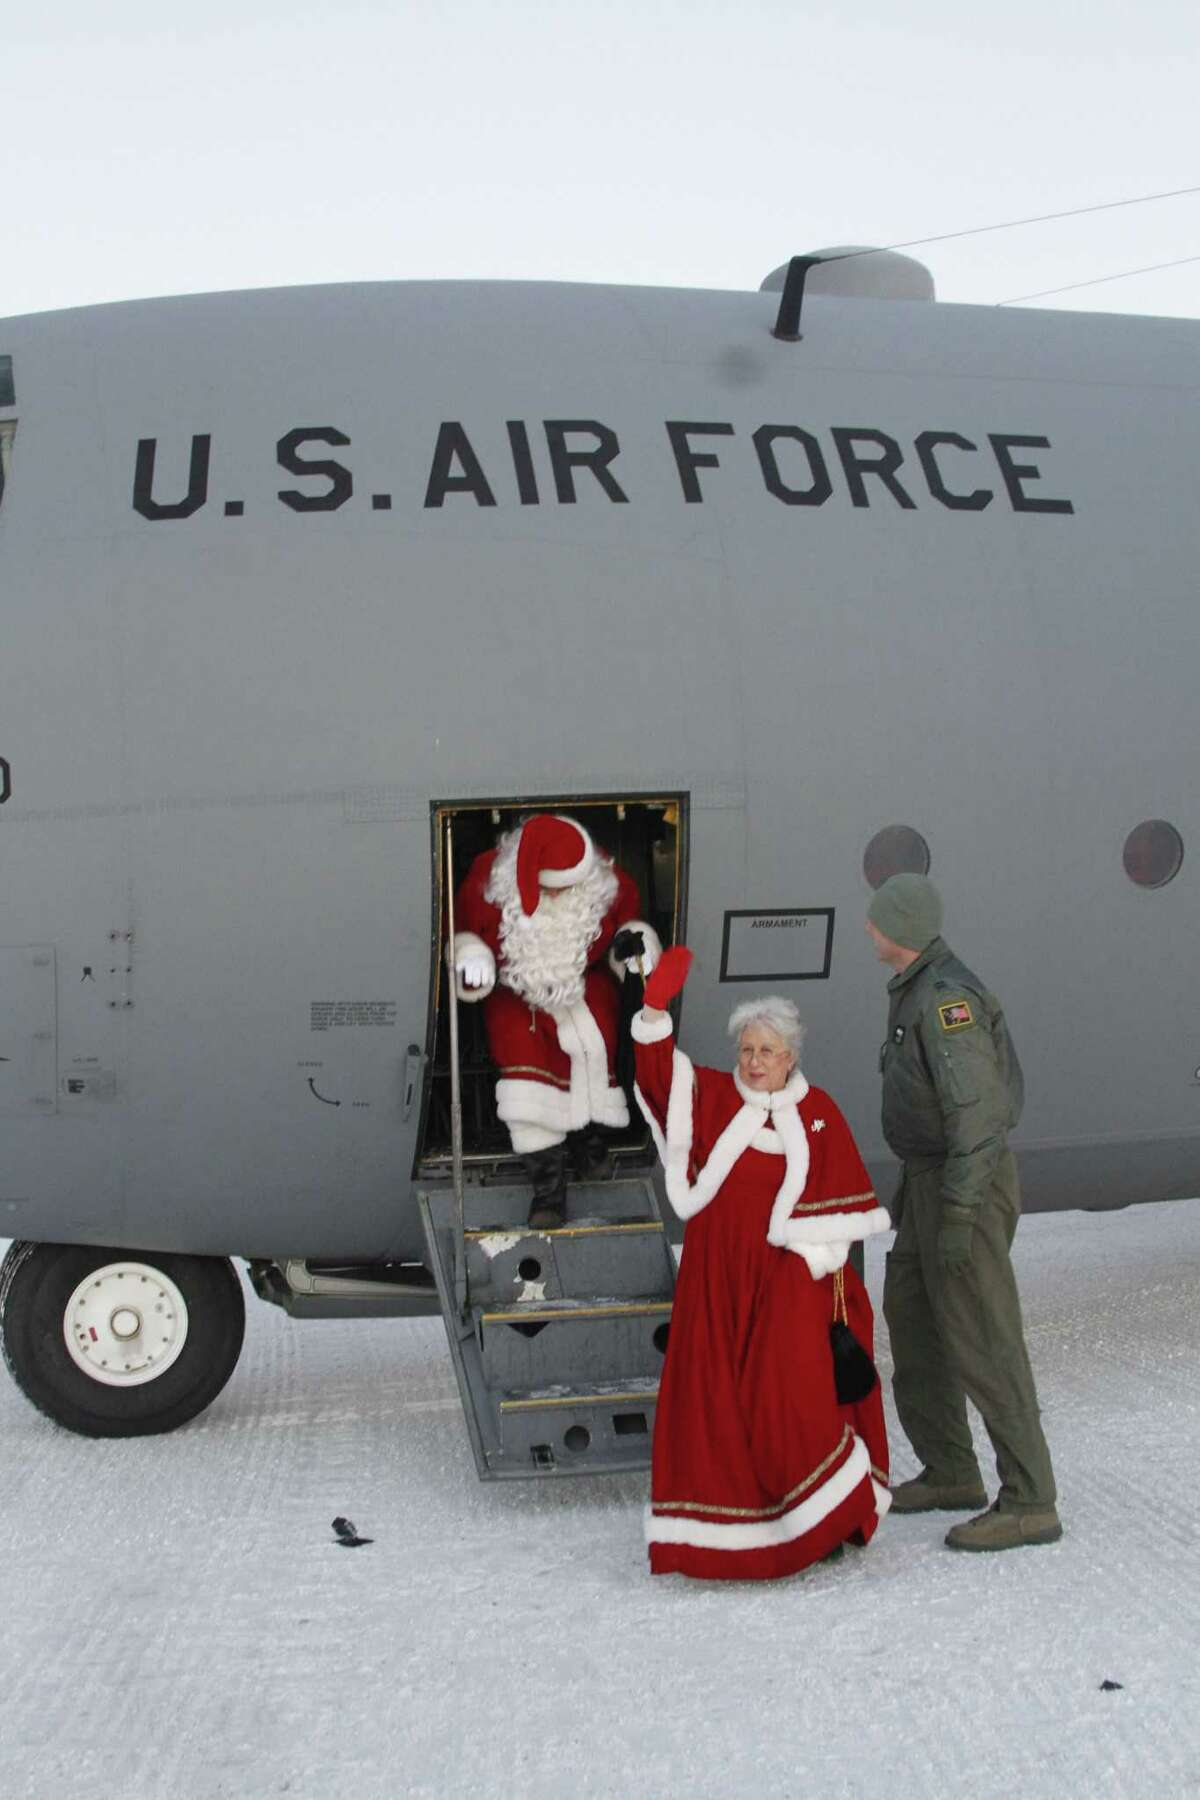 This photo taken Dec. 6, 2014, shows Santa and Mrs. Claus getting off a C130 military transport plane in Shishmaref, Alaska. The Alaska National Guard provided transport for the good Samaritan program Operation Santa, which took gifts and schools supplies to about 300 children in the Inupiat Eskimo community. (AP Photo/Mark Thiessen)